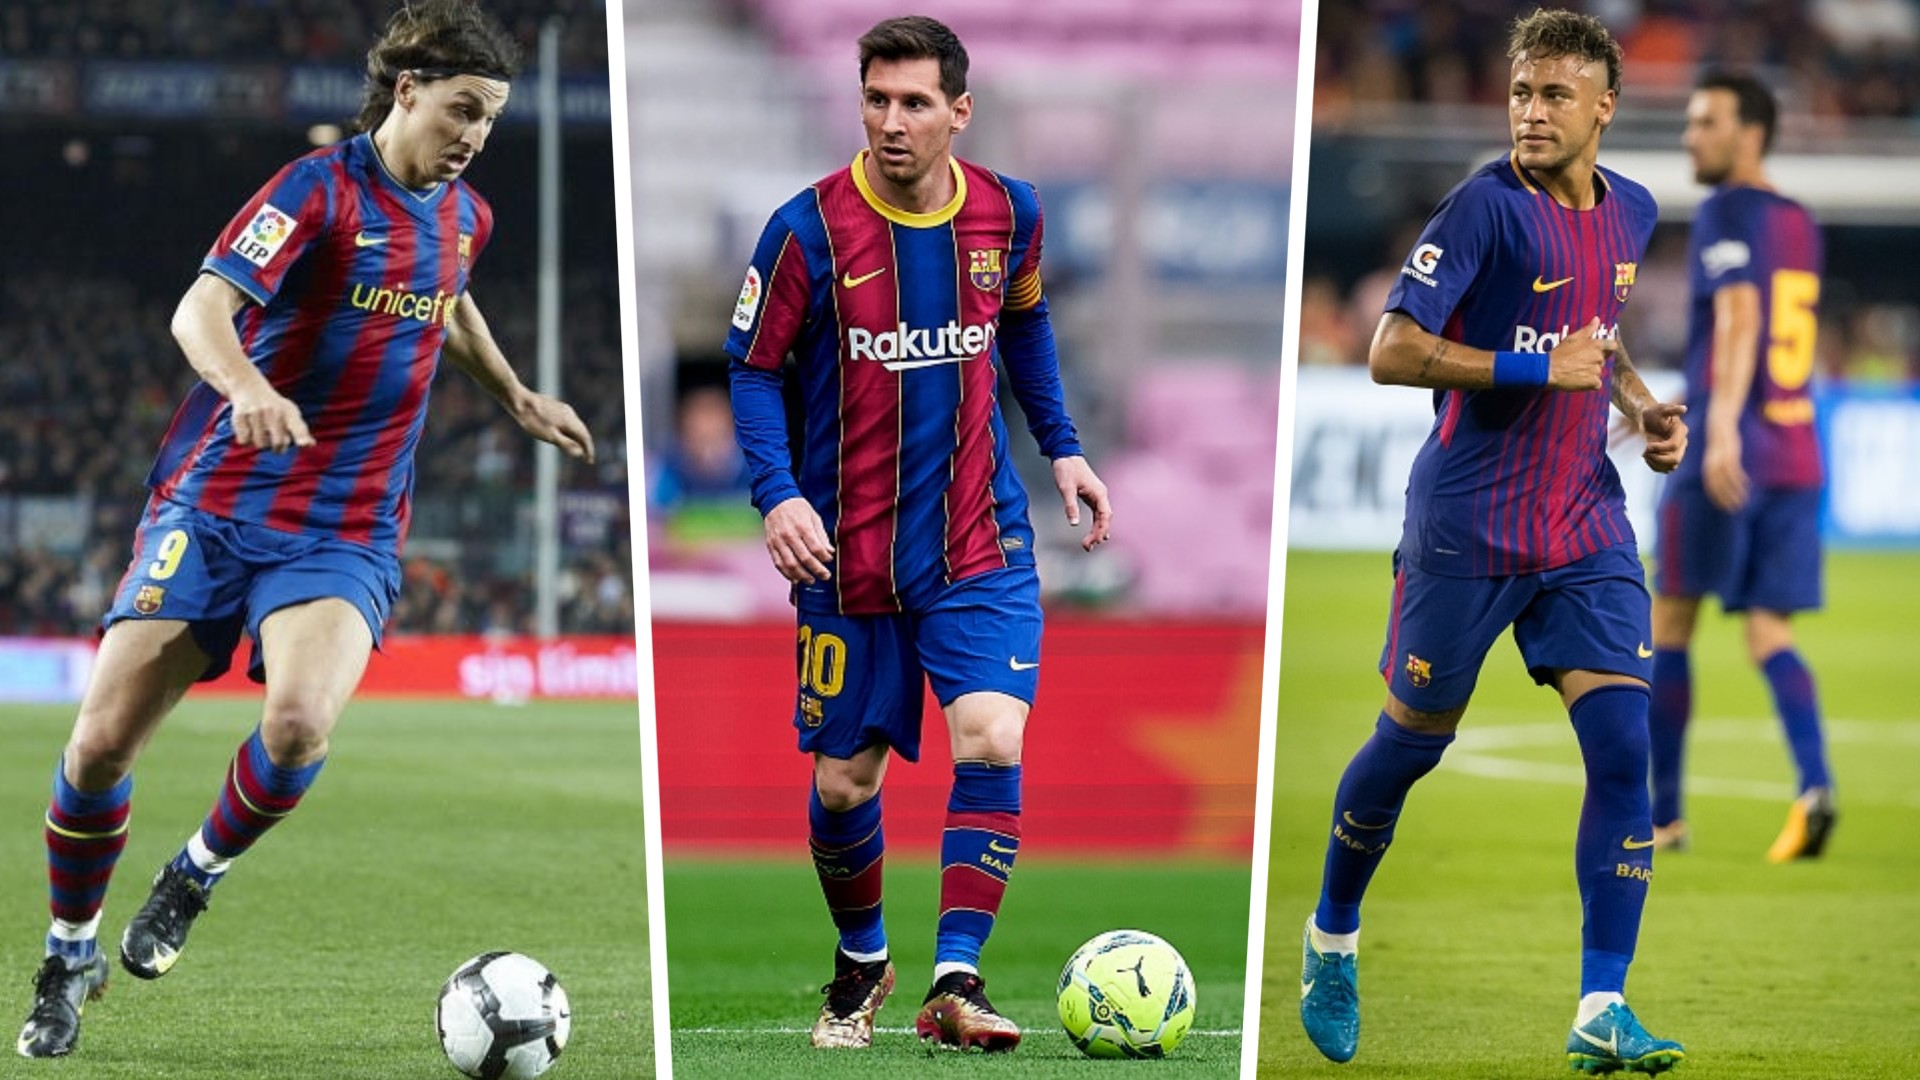 Zlatan Ibrahimovic, Lionel Messi and Neymar - Nine players who played for Barcelona first and then joined PSG